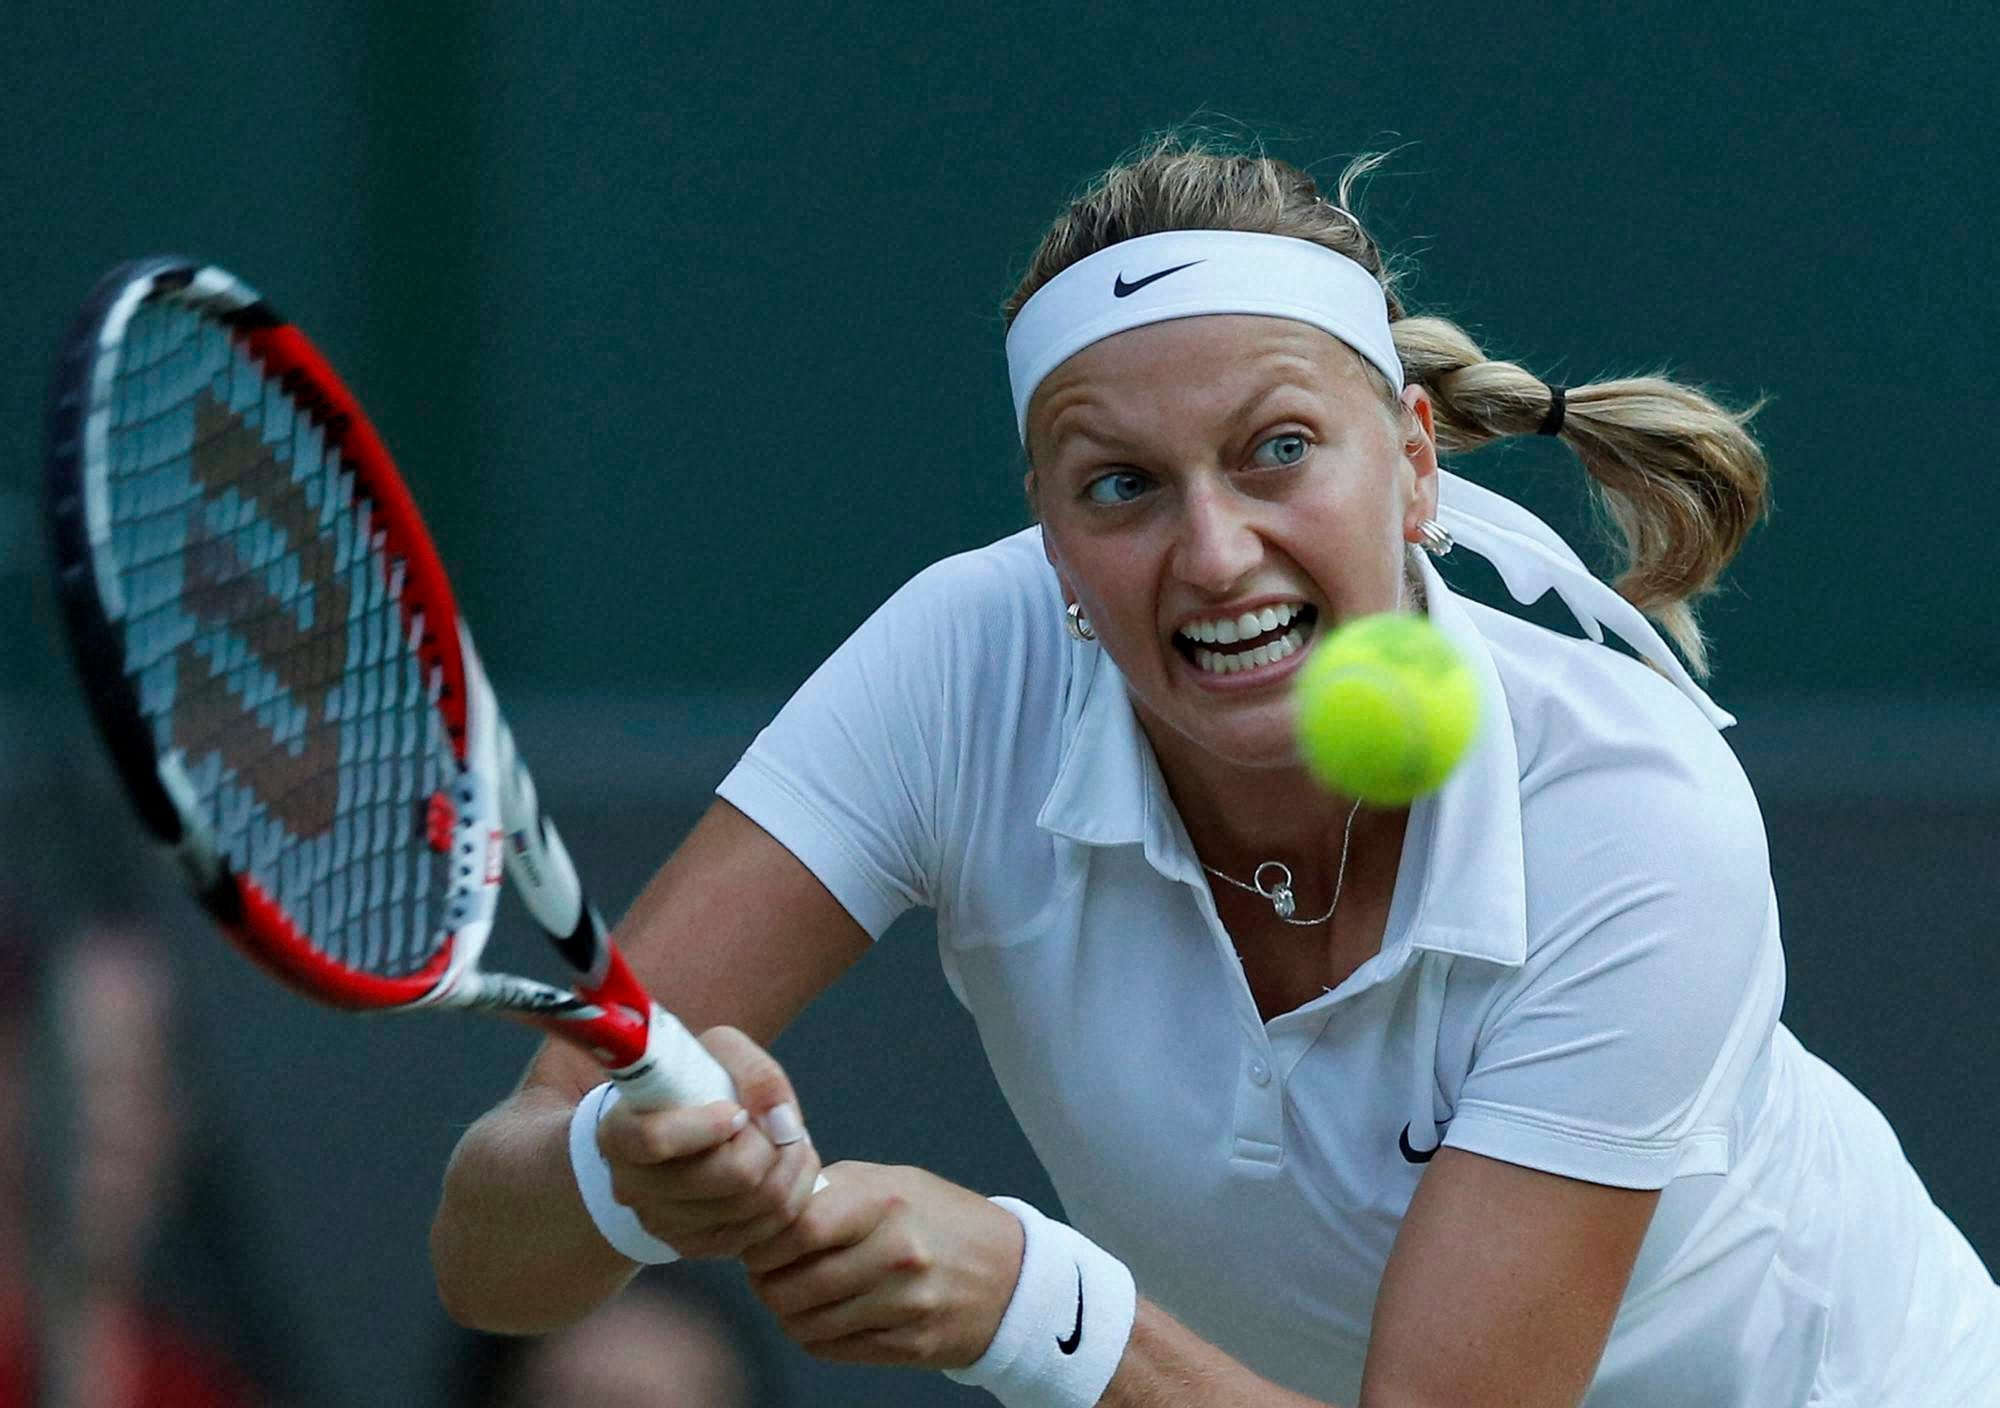 Petra Kvitova, women's quarterfinal match, Tennis Championships in Wimbledon, London,